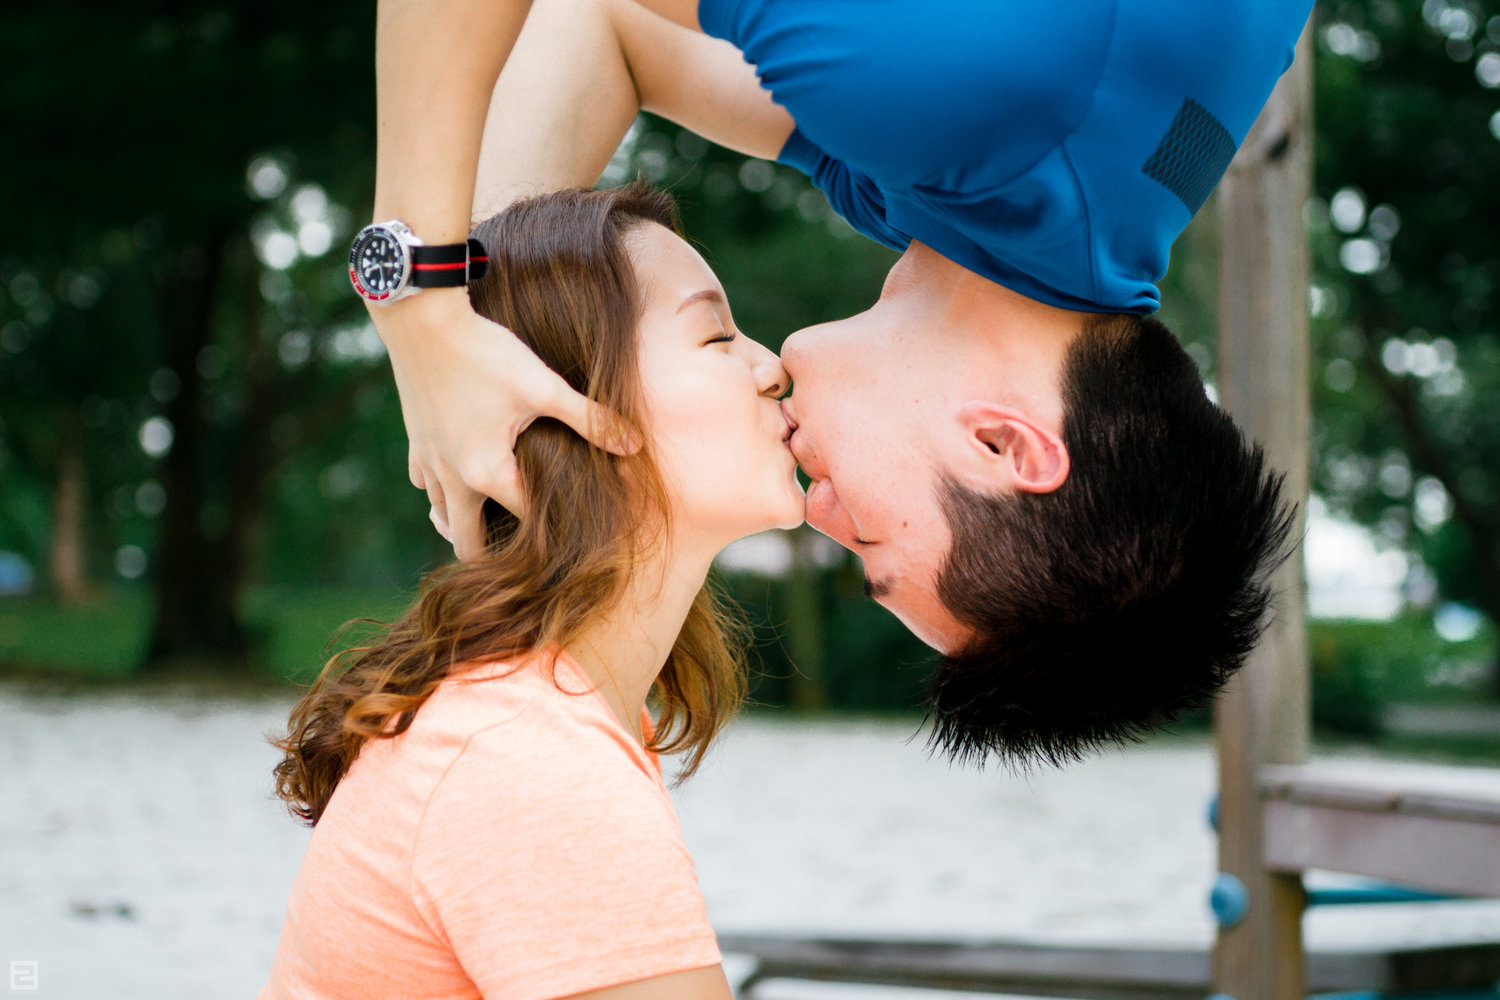 An almost Spiderman Kiss.